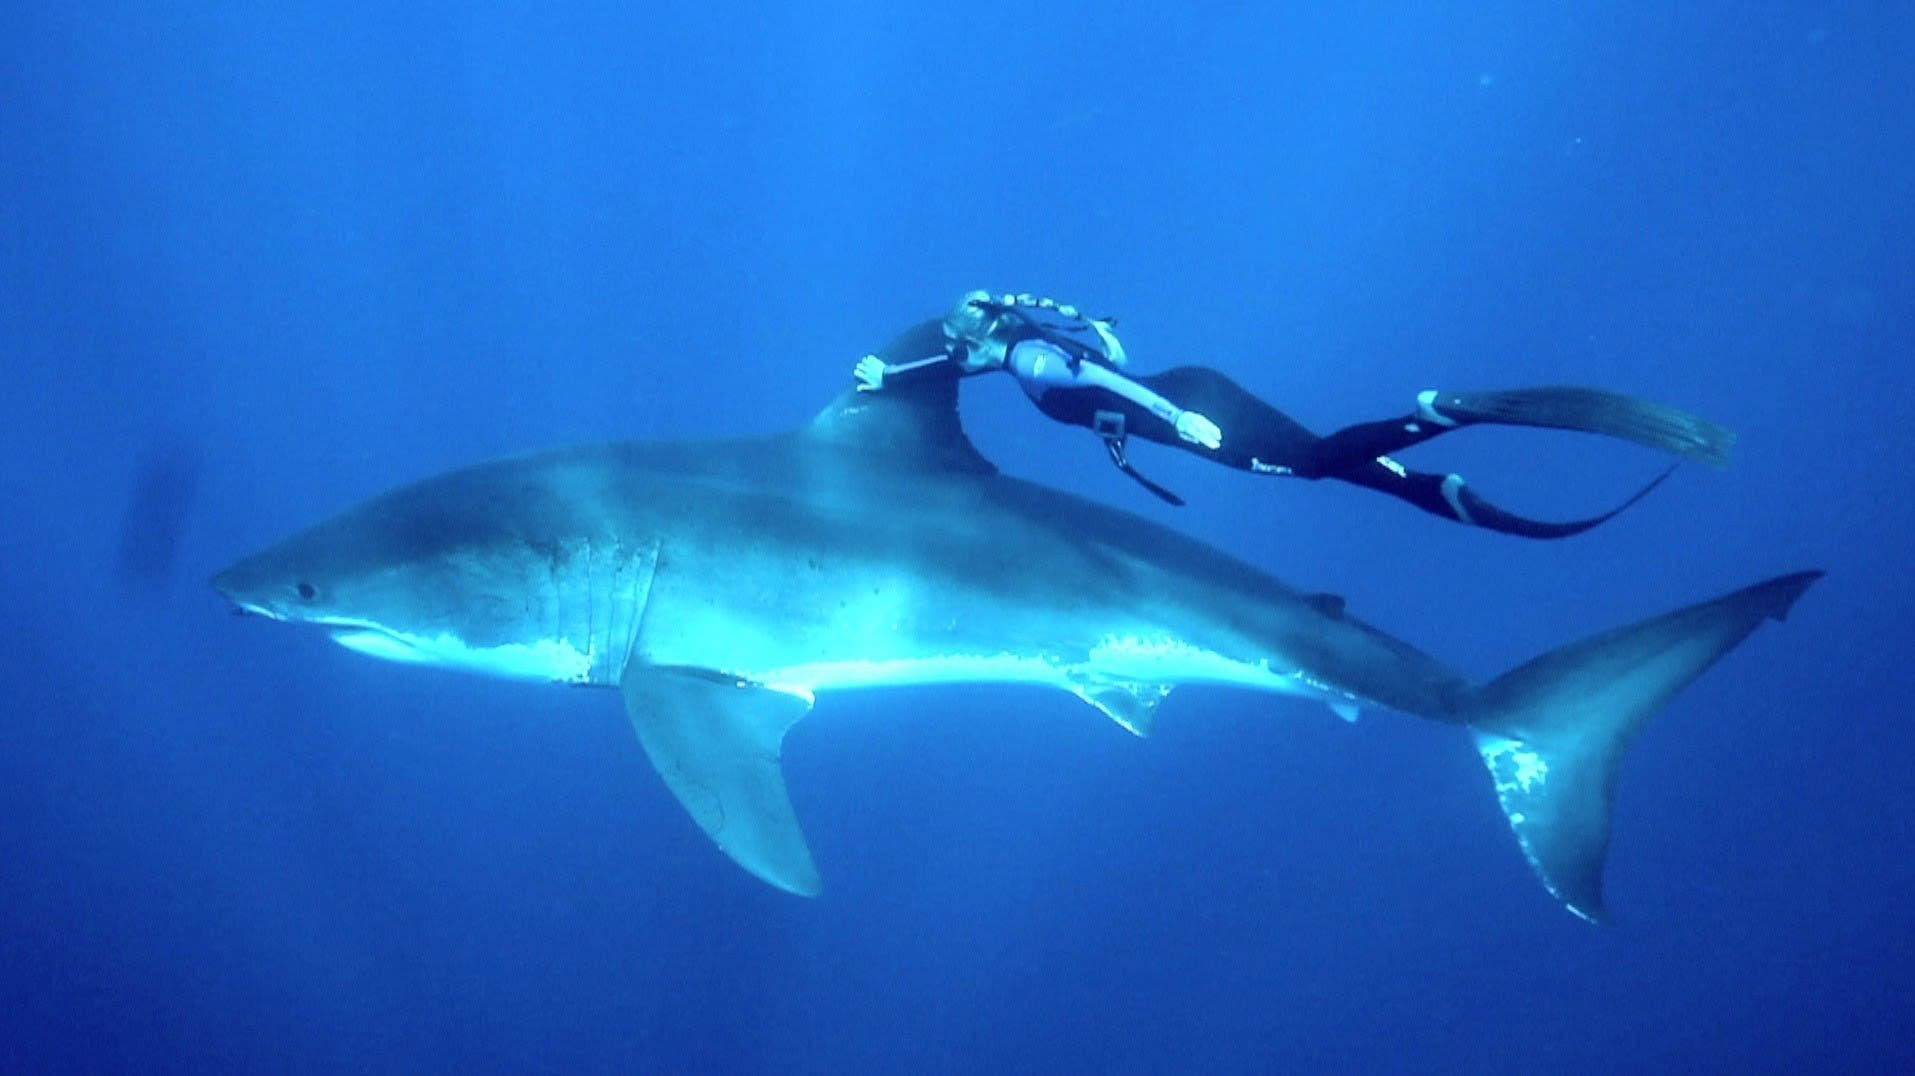 """Diver Ocean Ramsey """"Swims with Sharks"""" to Promote a More Positive Image of These Animals - The Phoblographer"""